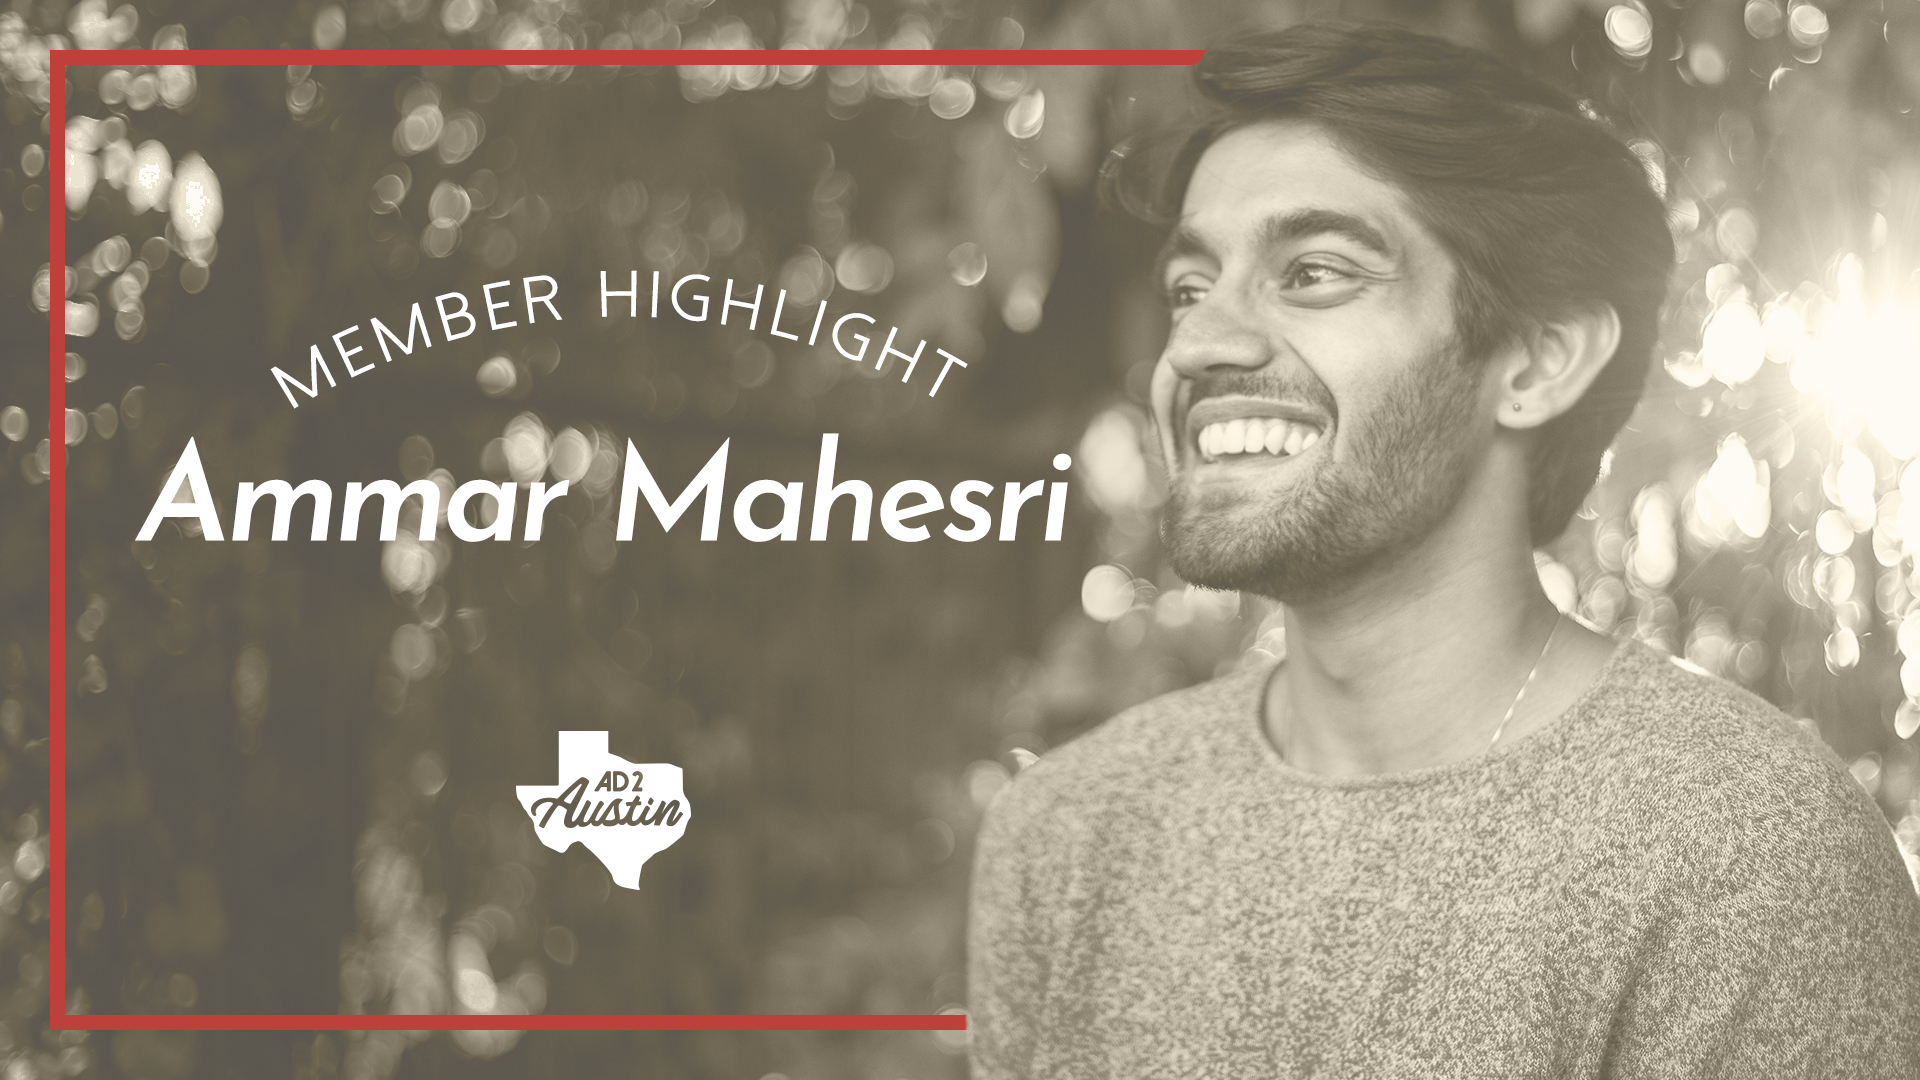 Introducing the first in our new series of interviews to highlight our spectacular members! We're starting with the following conversation between our Membership Co-Chairs, Chris and Caitlin, and our first highlighted member: Ammar Mahesri, one of our Diversity Co-Chairs.